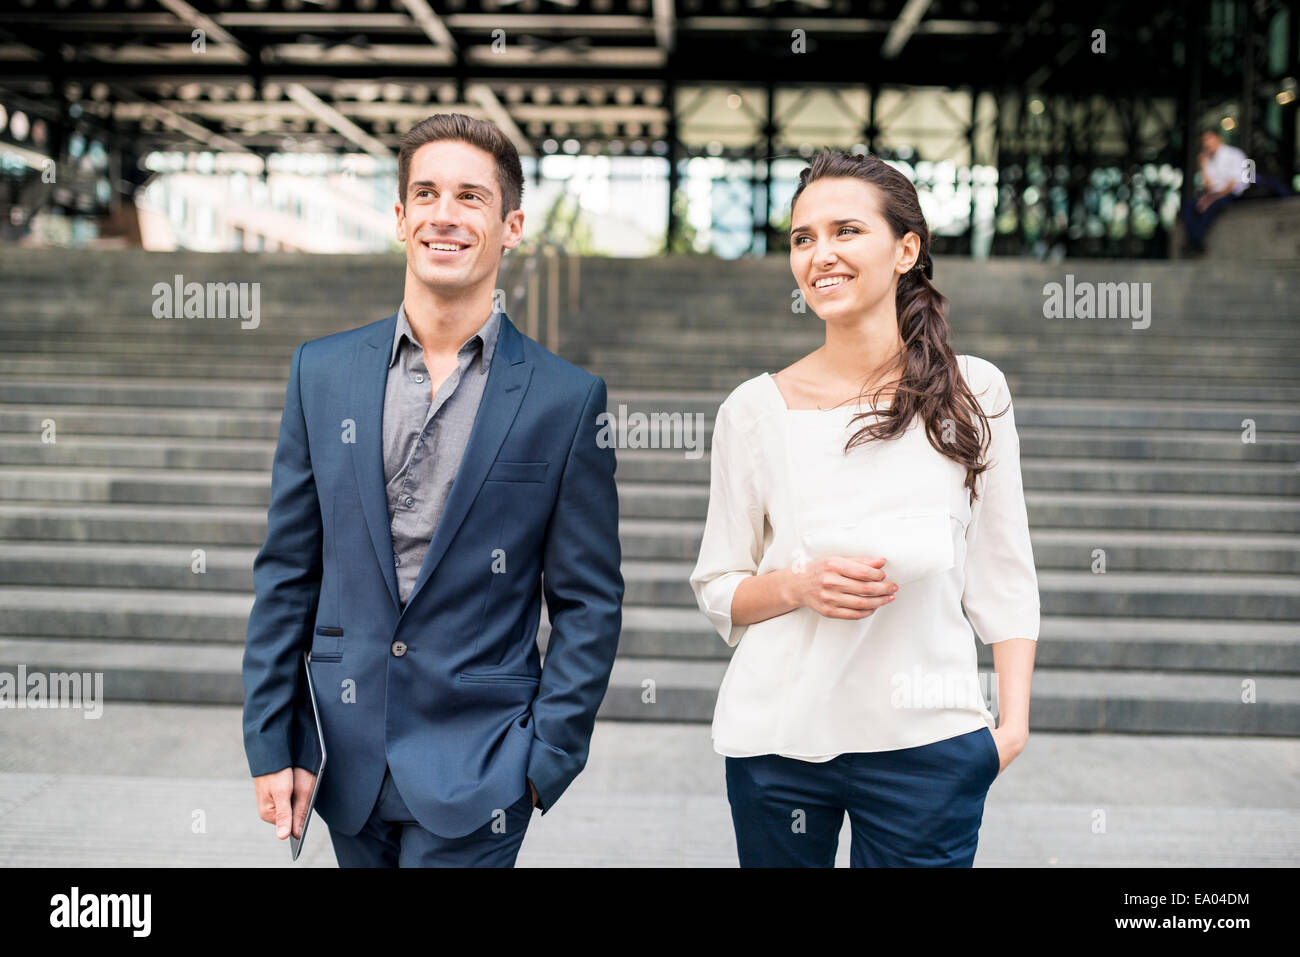 businesswoman and man chatting whilst walking, London, UK - Stock Image